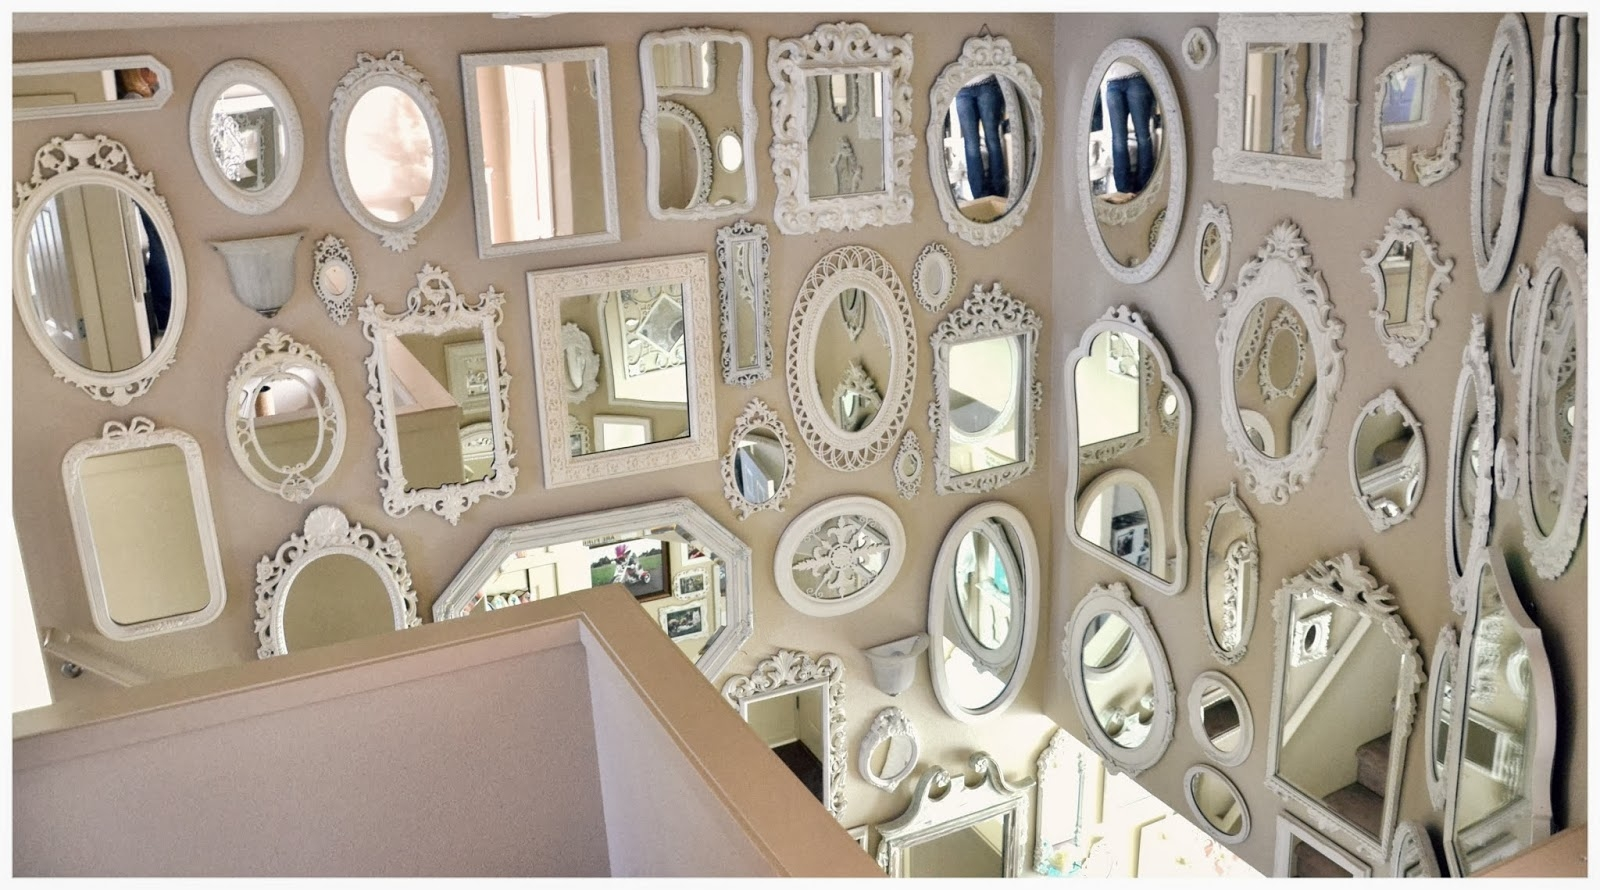 Not So Shab Shab Chic Mirror Wall Is Almost Complete With Regard To Chabby Chic Mirrors (Image 7 of 15)